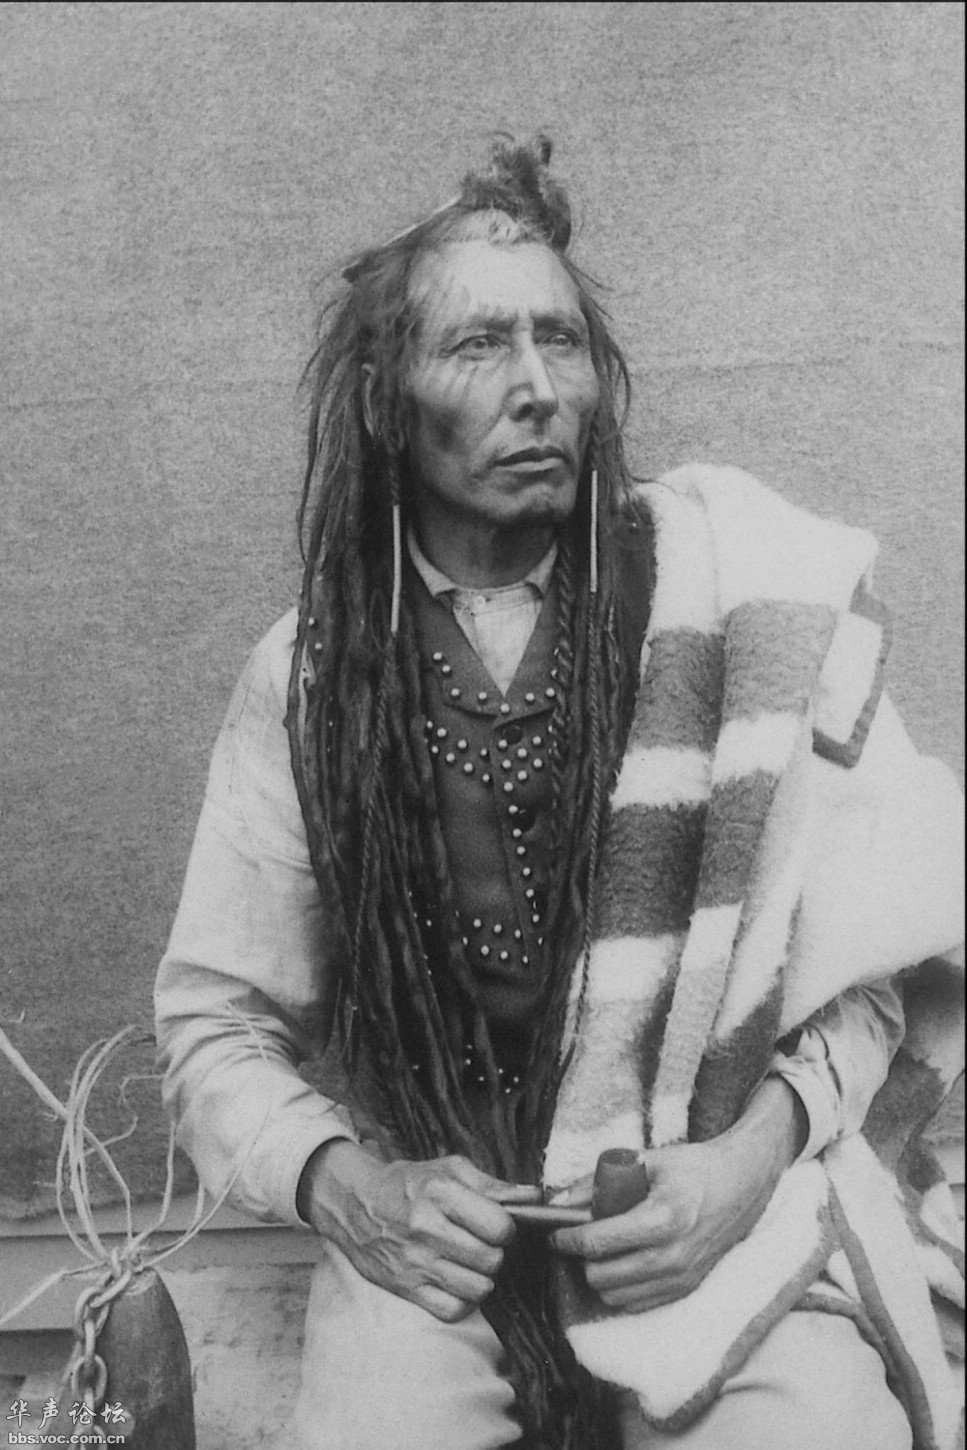 Poundmaker, also known as The Drummer, was a Cree chief, later adopted by Crowfoot of the Blackfoot Nation. Although imprisoned for treason, Poundmaker insisted that he had only wanted justice for his people. (library and archives canada, c-  001875  )